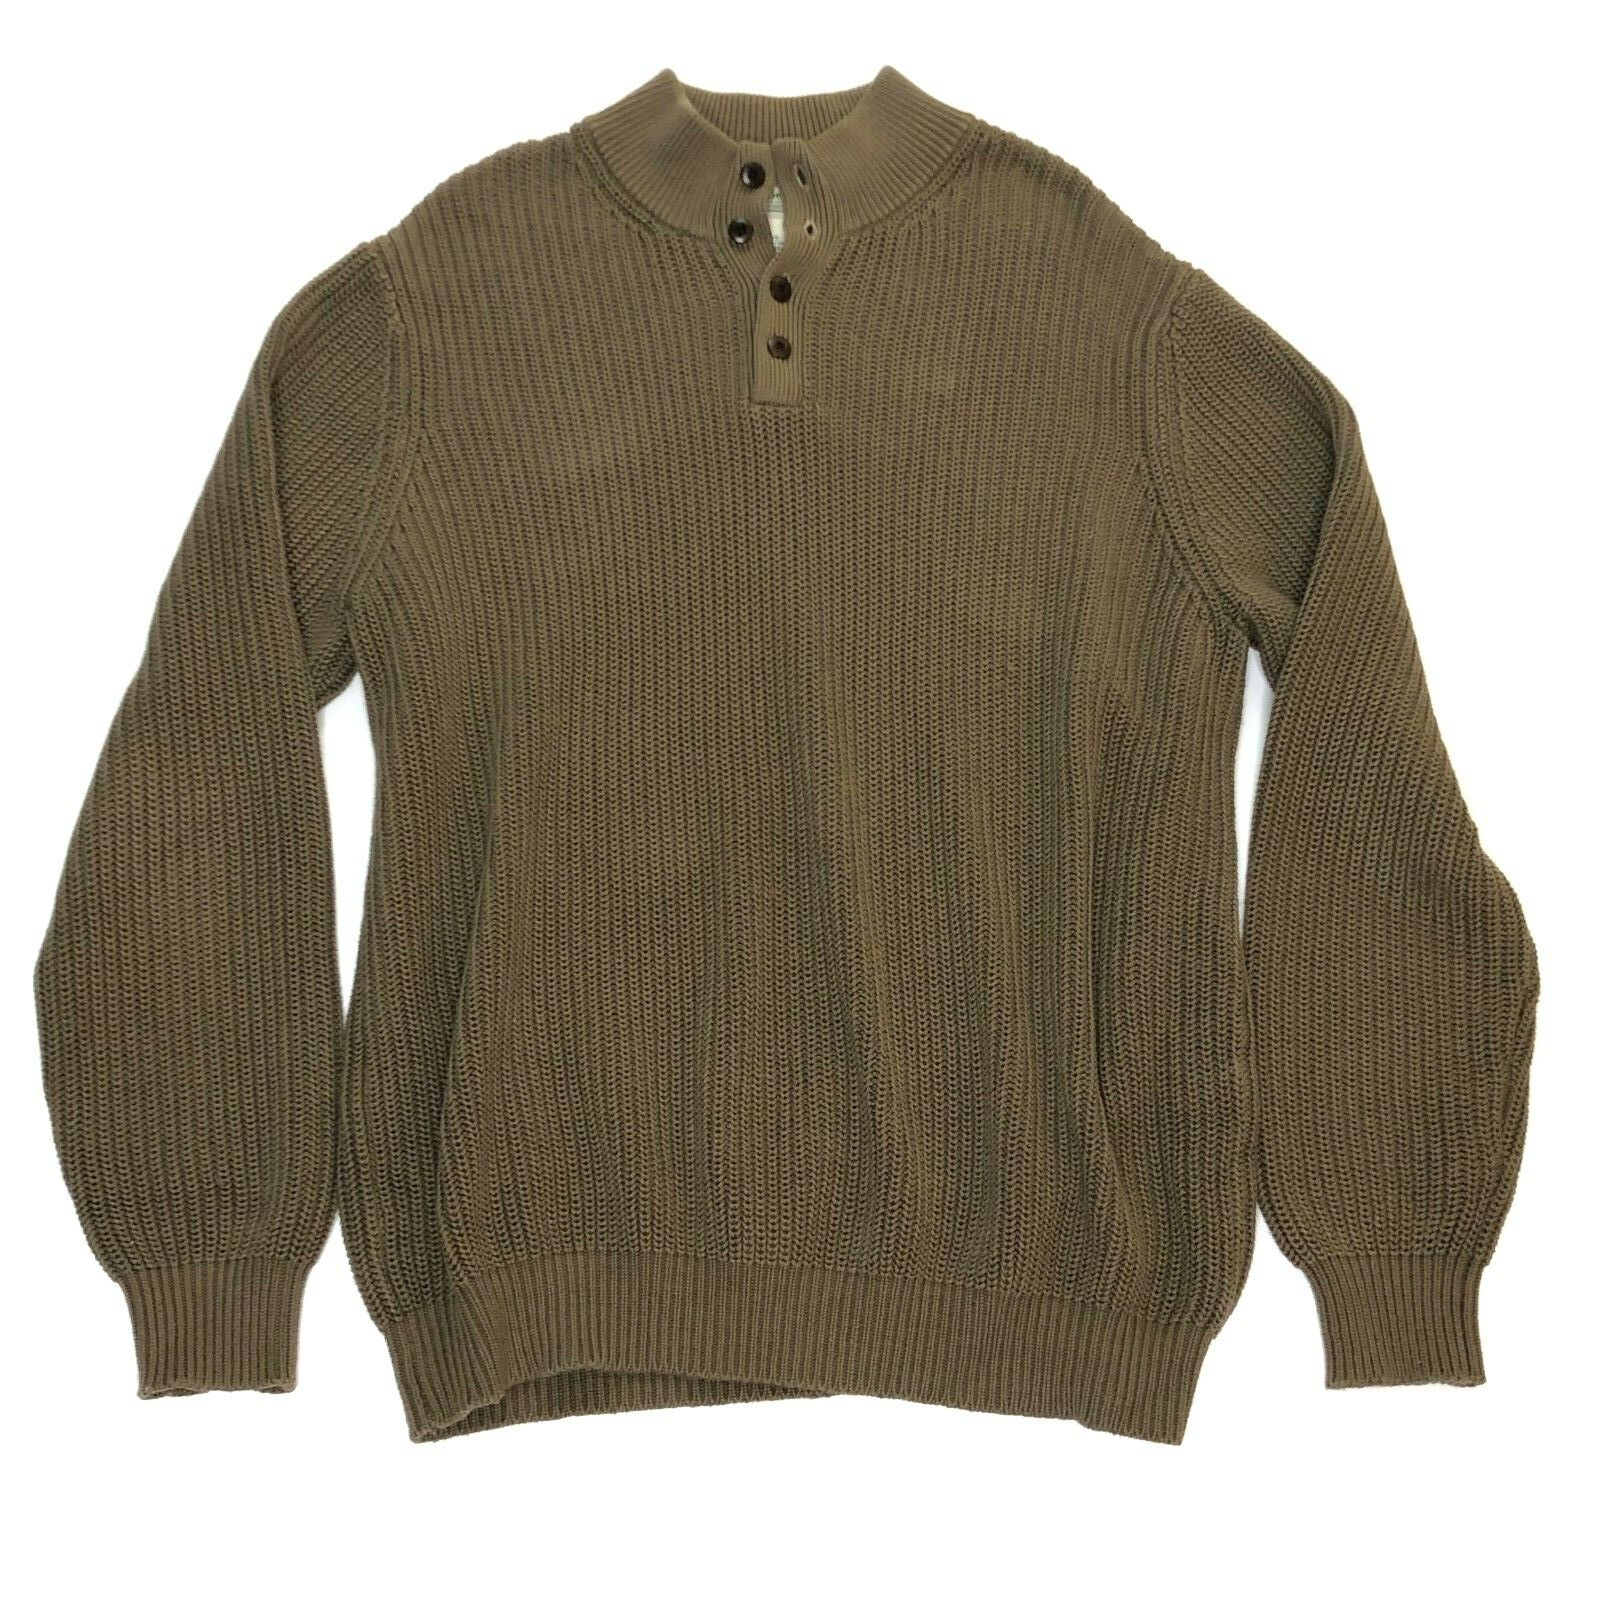 L.L. Bean Men's Henley Sweater XL Chunky Cable Knit Fisherman Olive